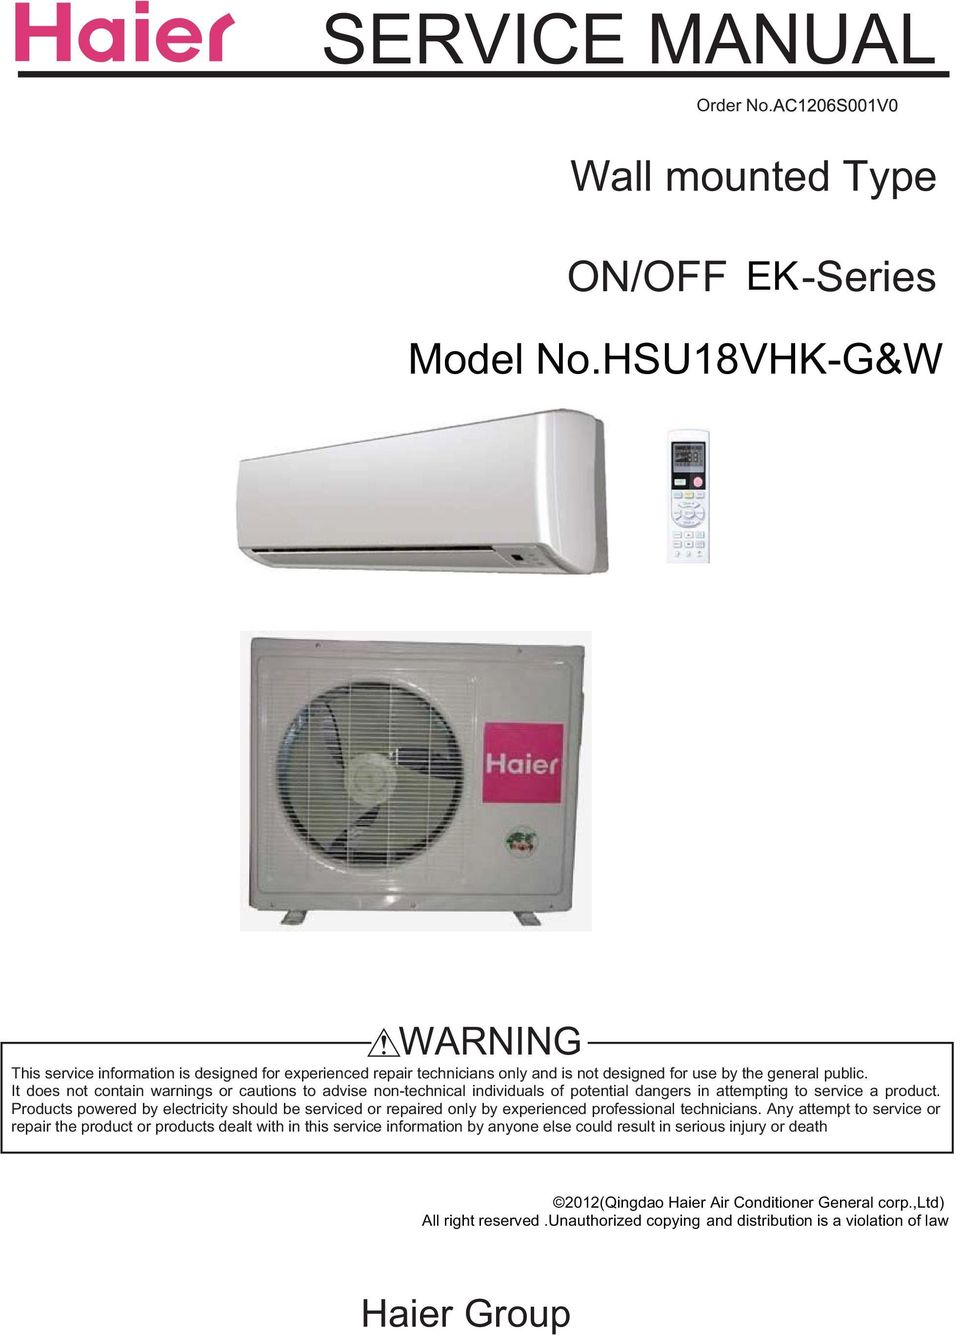 Service Manual Wall Mounted Type Model Nohsu18vhk Gw Warning Haier Air Handler Wiring Diagrams It Does Not Contain Warnings Or Cautions To Advise Non Technical Individuals Of Potential Dangers